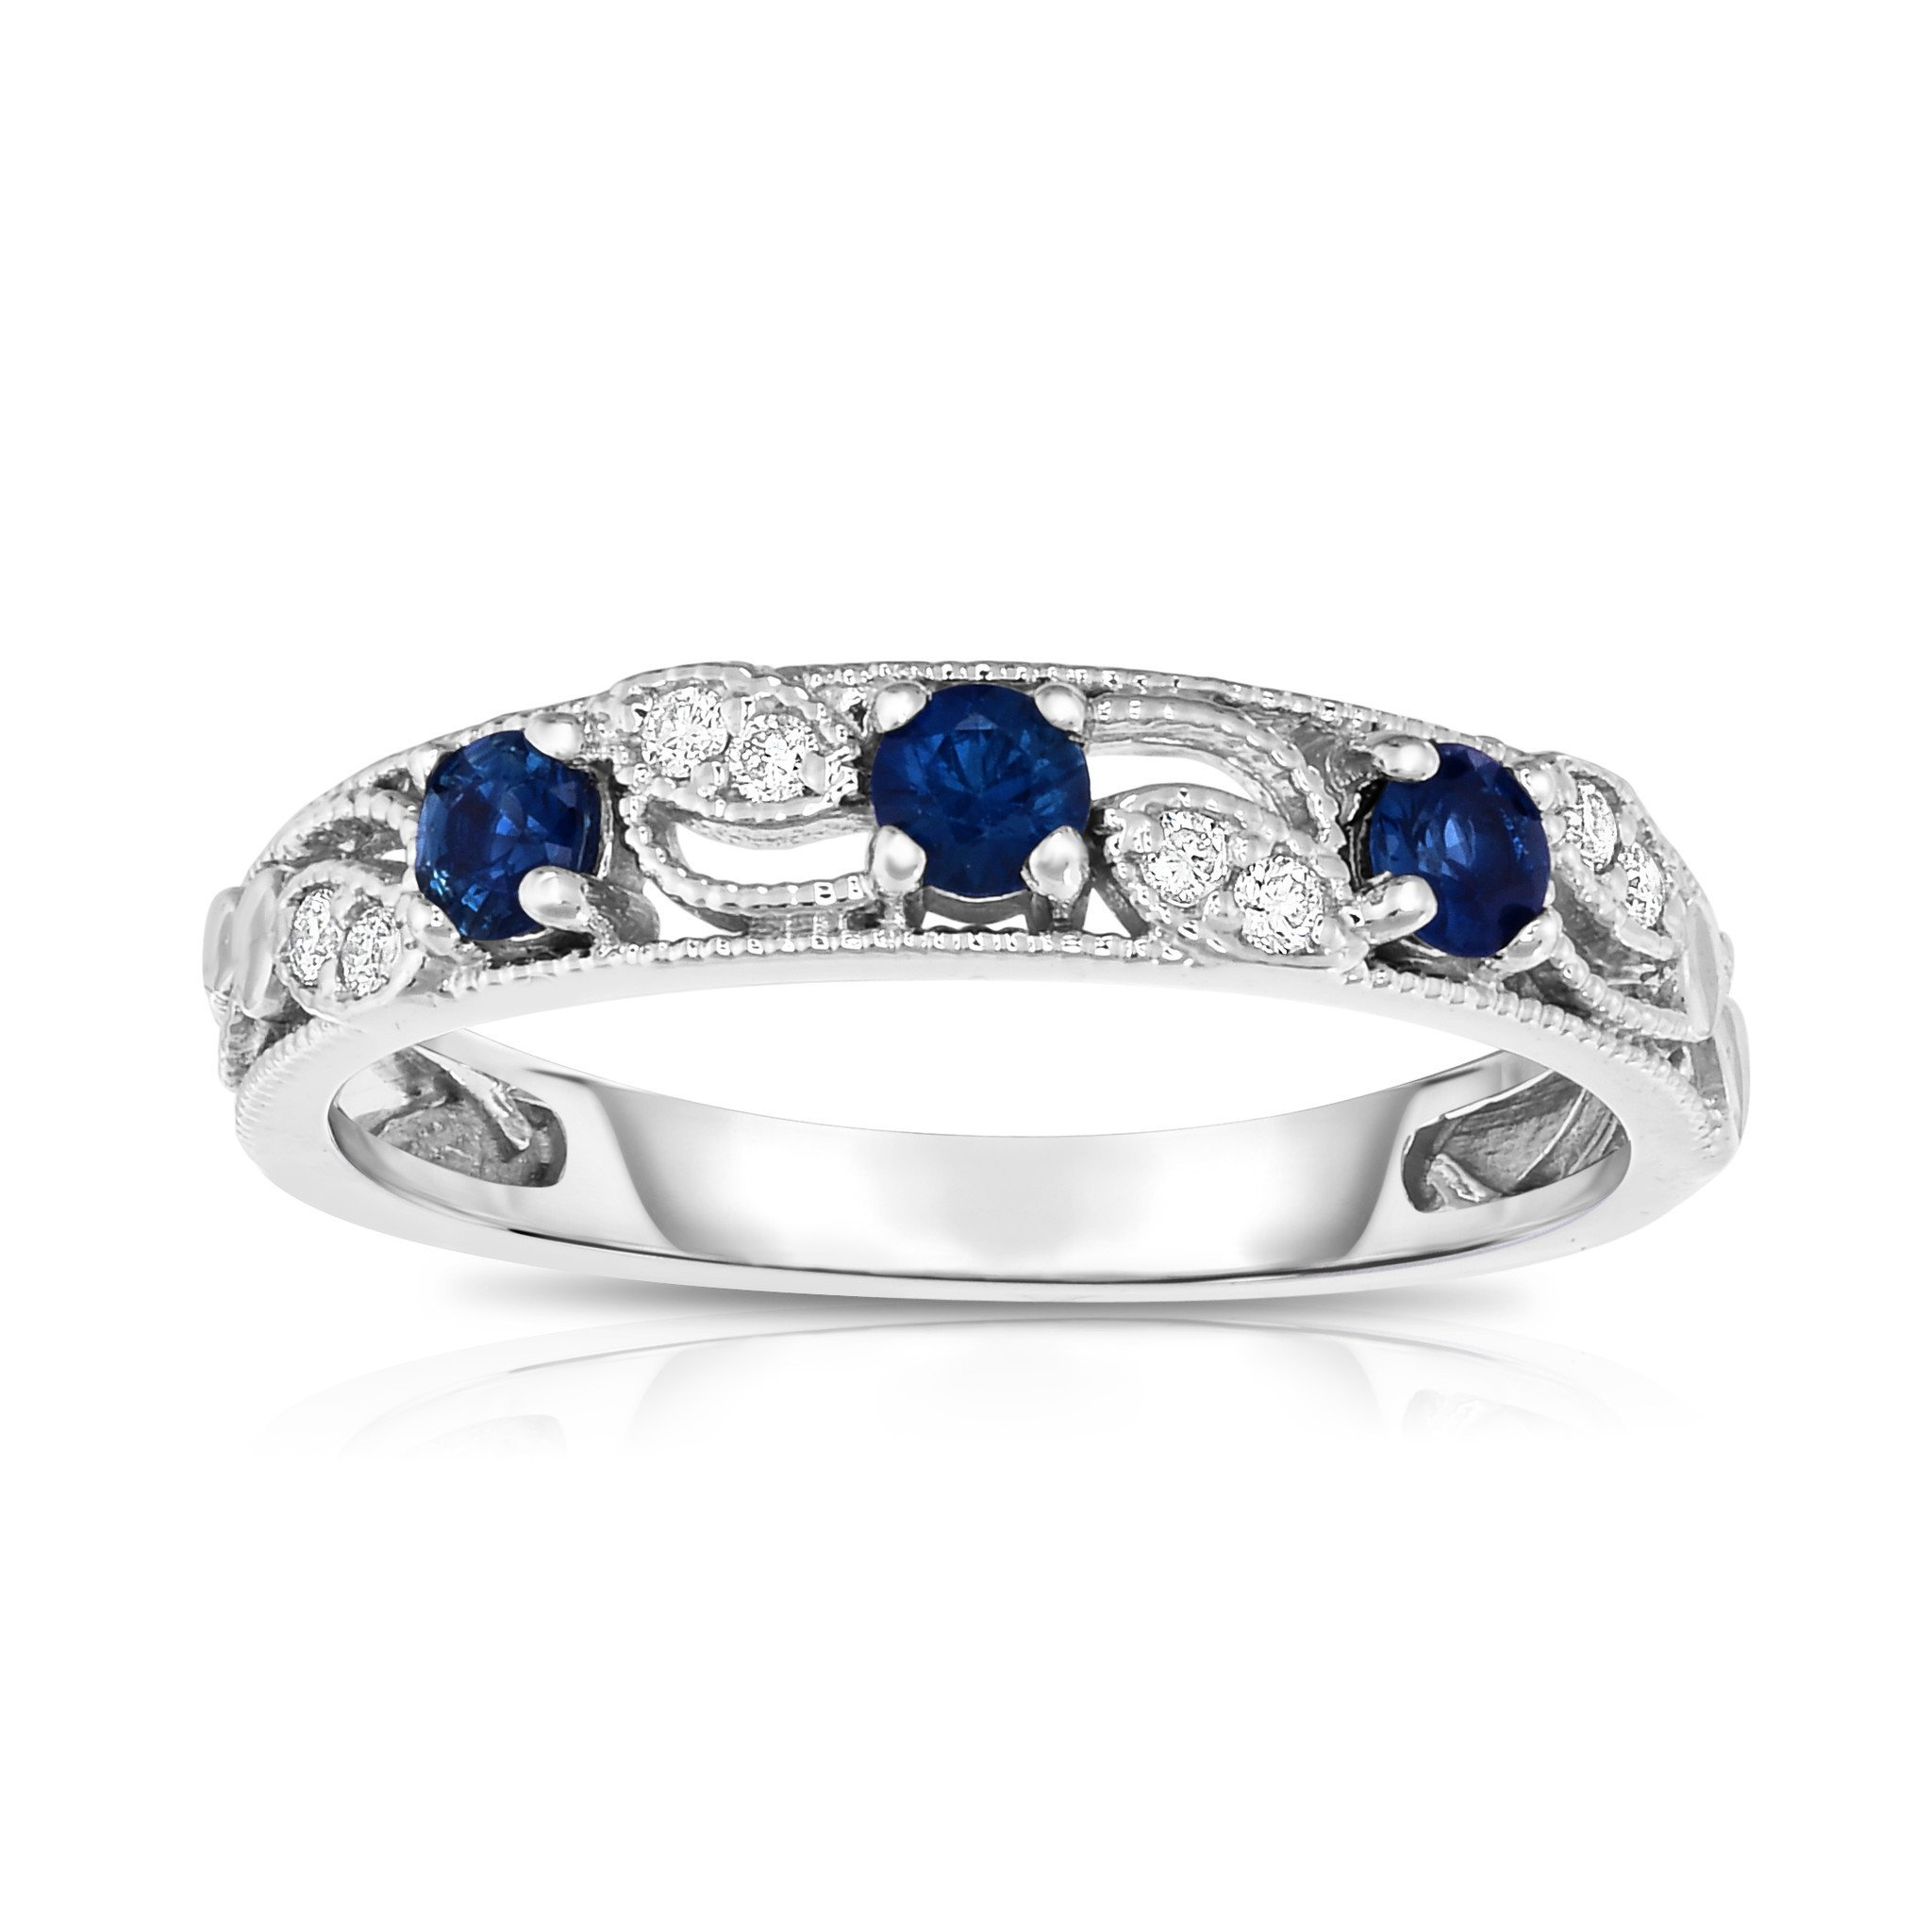 Noray Designs 14K White Gold Blue Sapphire & Diamond (0.06 Ct, G-H, SI2-I1 Clarity) Stackable Ring